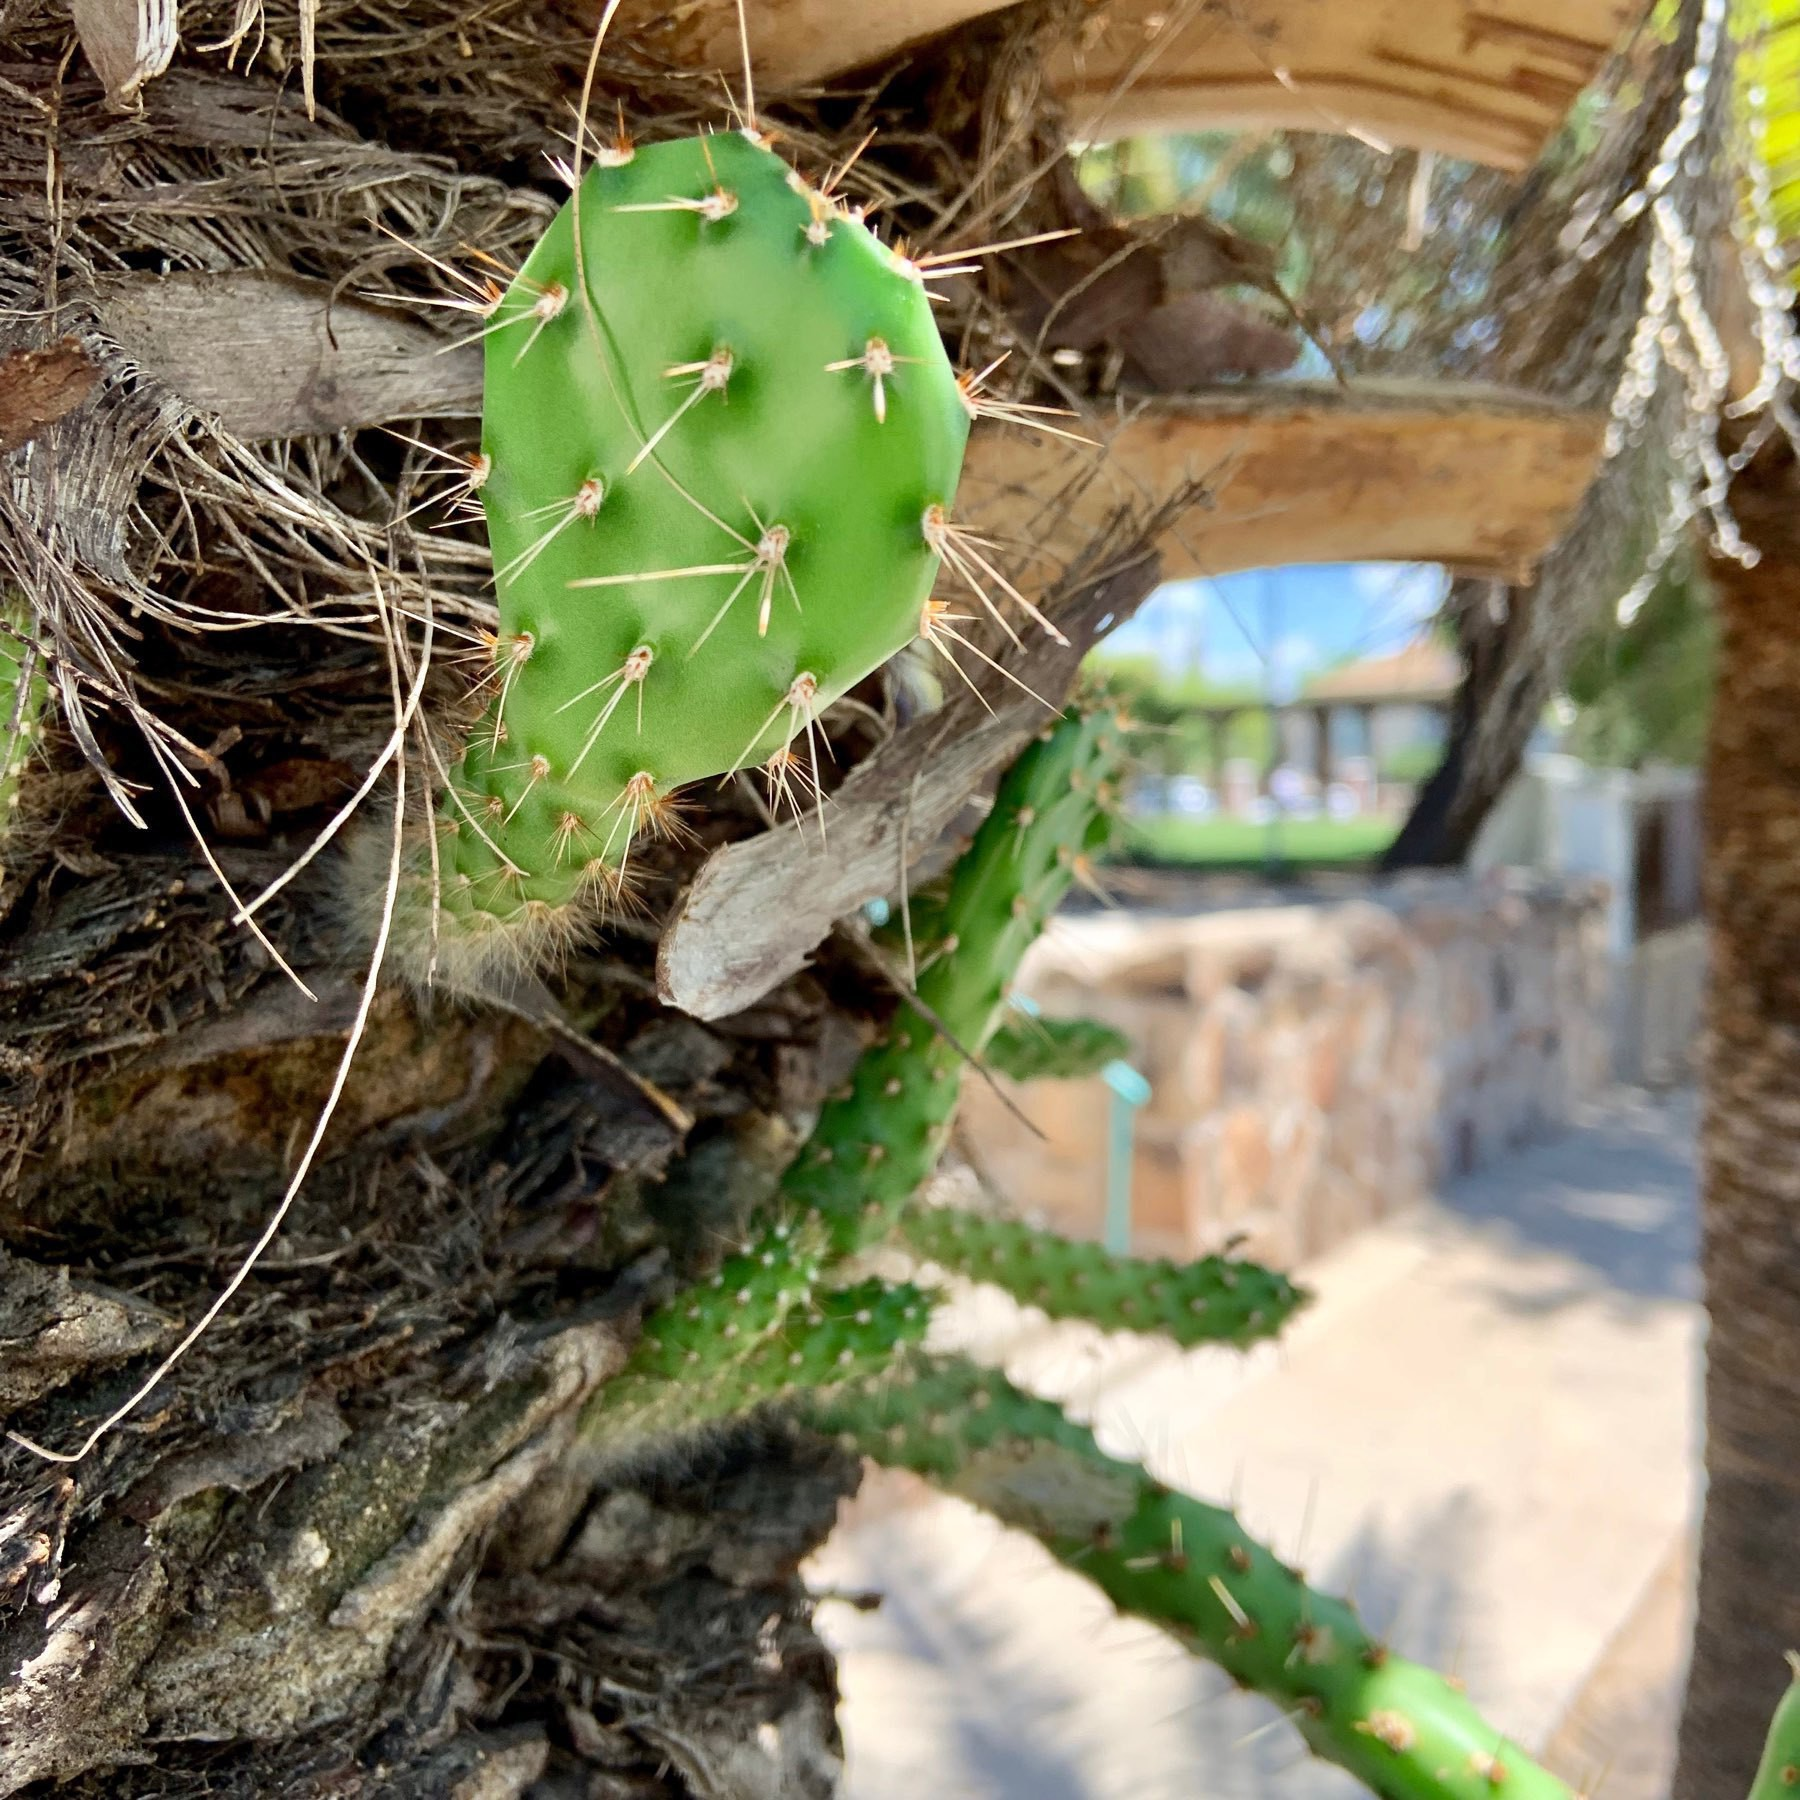 Prickly pear growing on the side of a palm tree